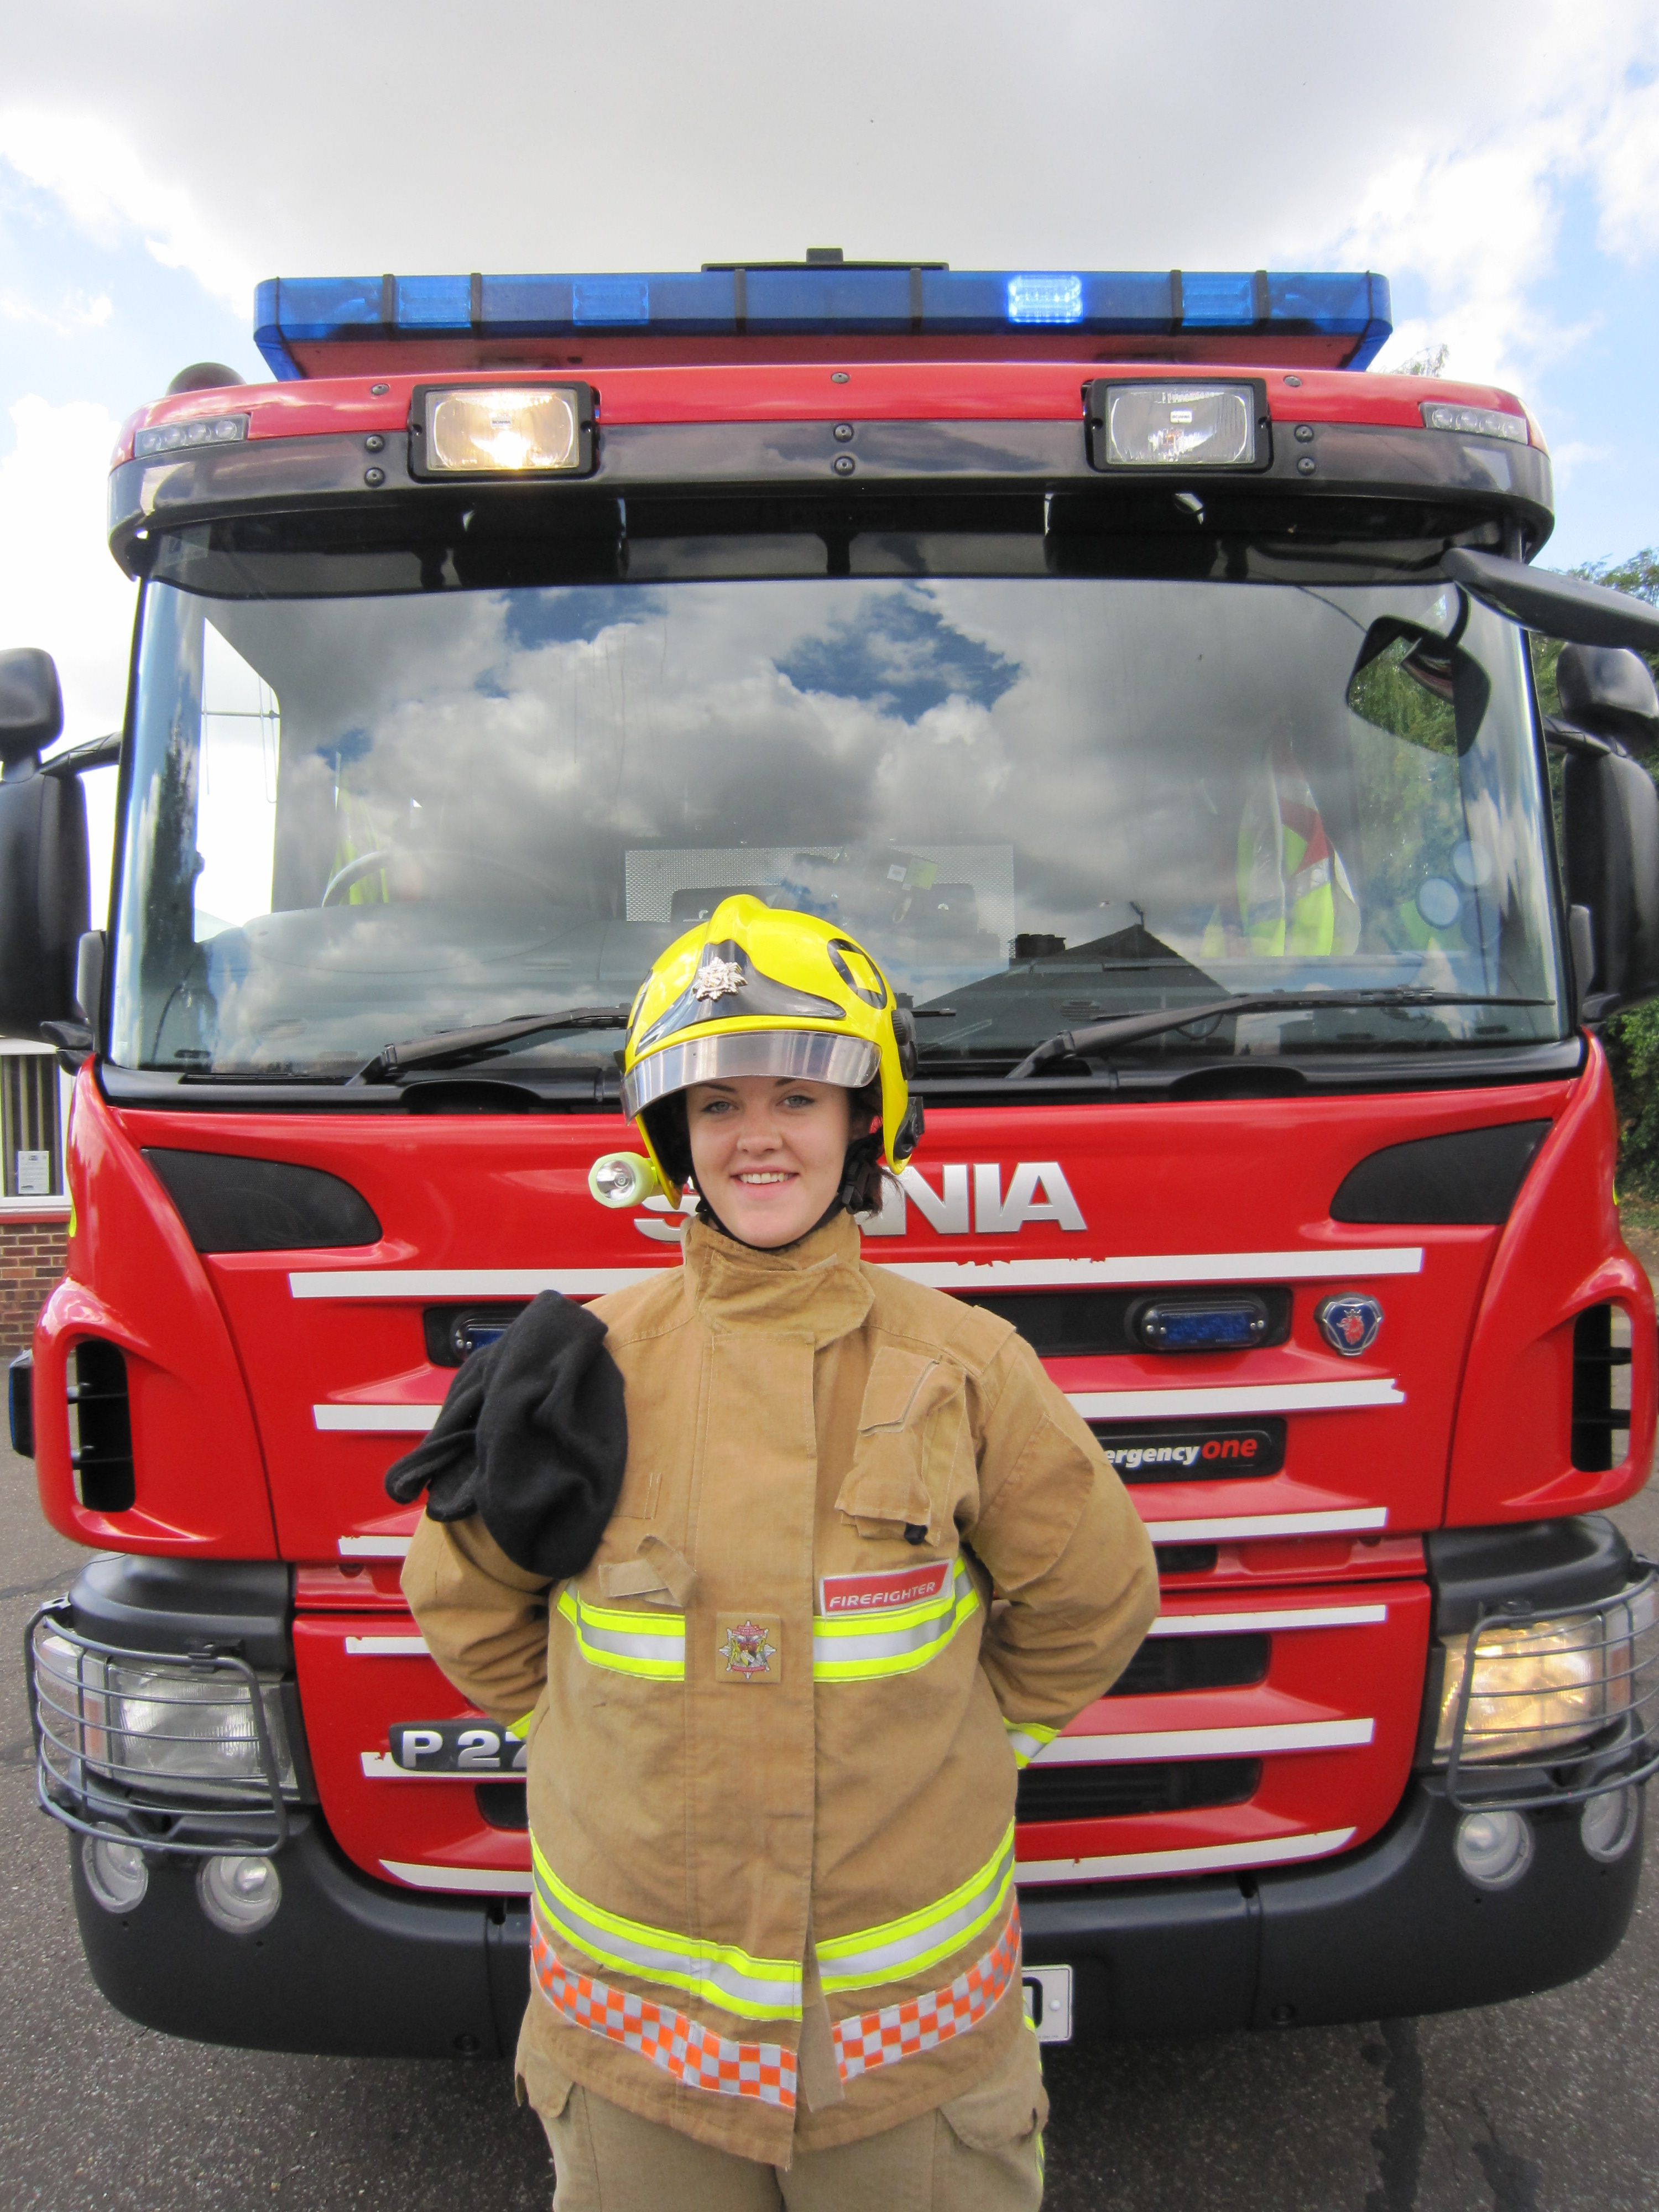 Chloe in front of fire engine